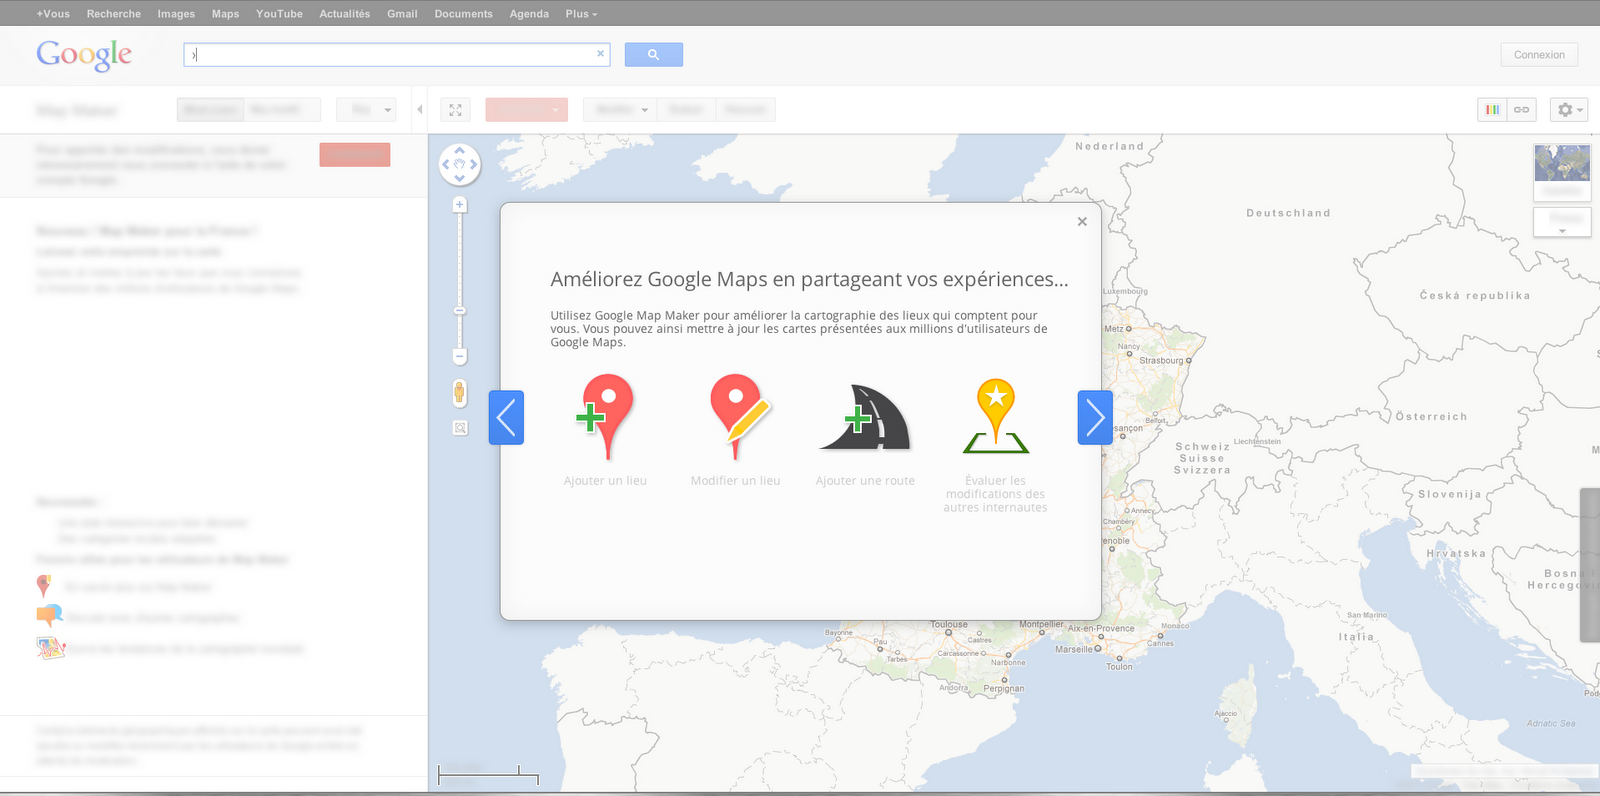 Google Lat Long: Start a affair with Google Map Maker ... on physical map of france, zoomable map of france, large map of france, media of france, detailed map france, book of france, aerial map of france, map of arrondissements paris france, street view of france, map of futuroscope in france, satellite map of france, tumblr map of france, printable map of france, google earth of france, online map of france, google france map with cities, flag of france, print of france, map of europe in france, google map france regions,